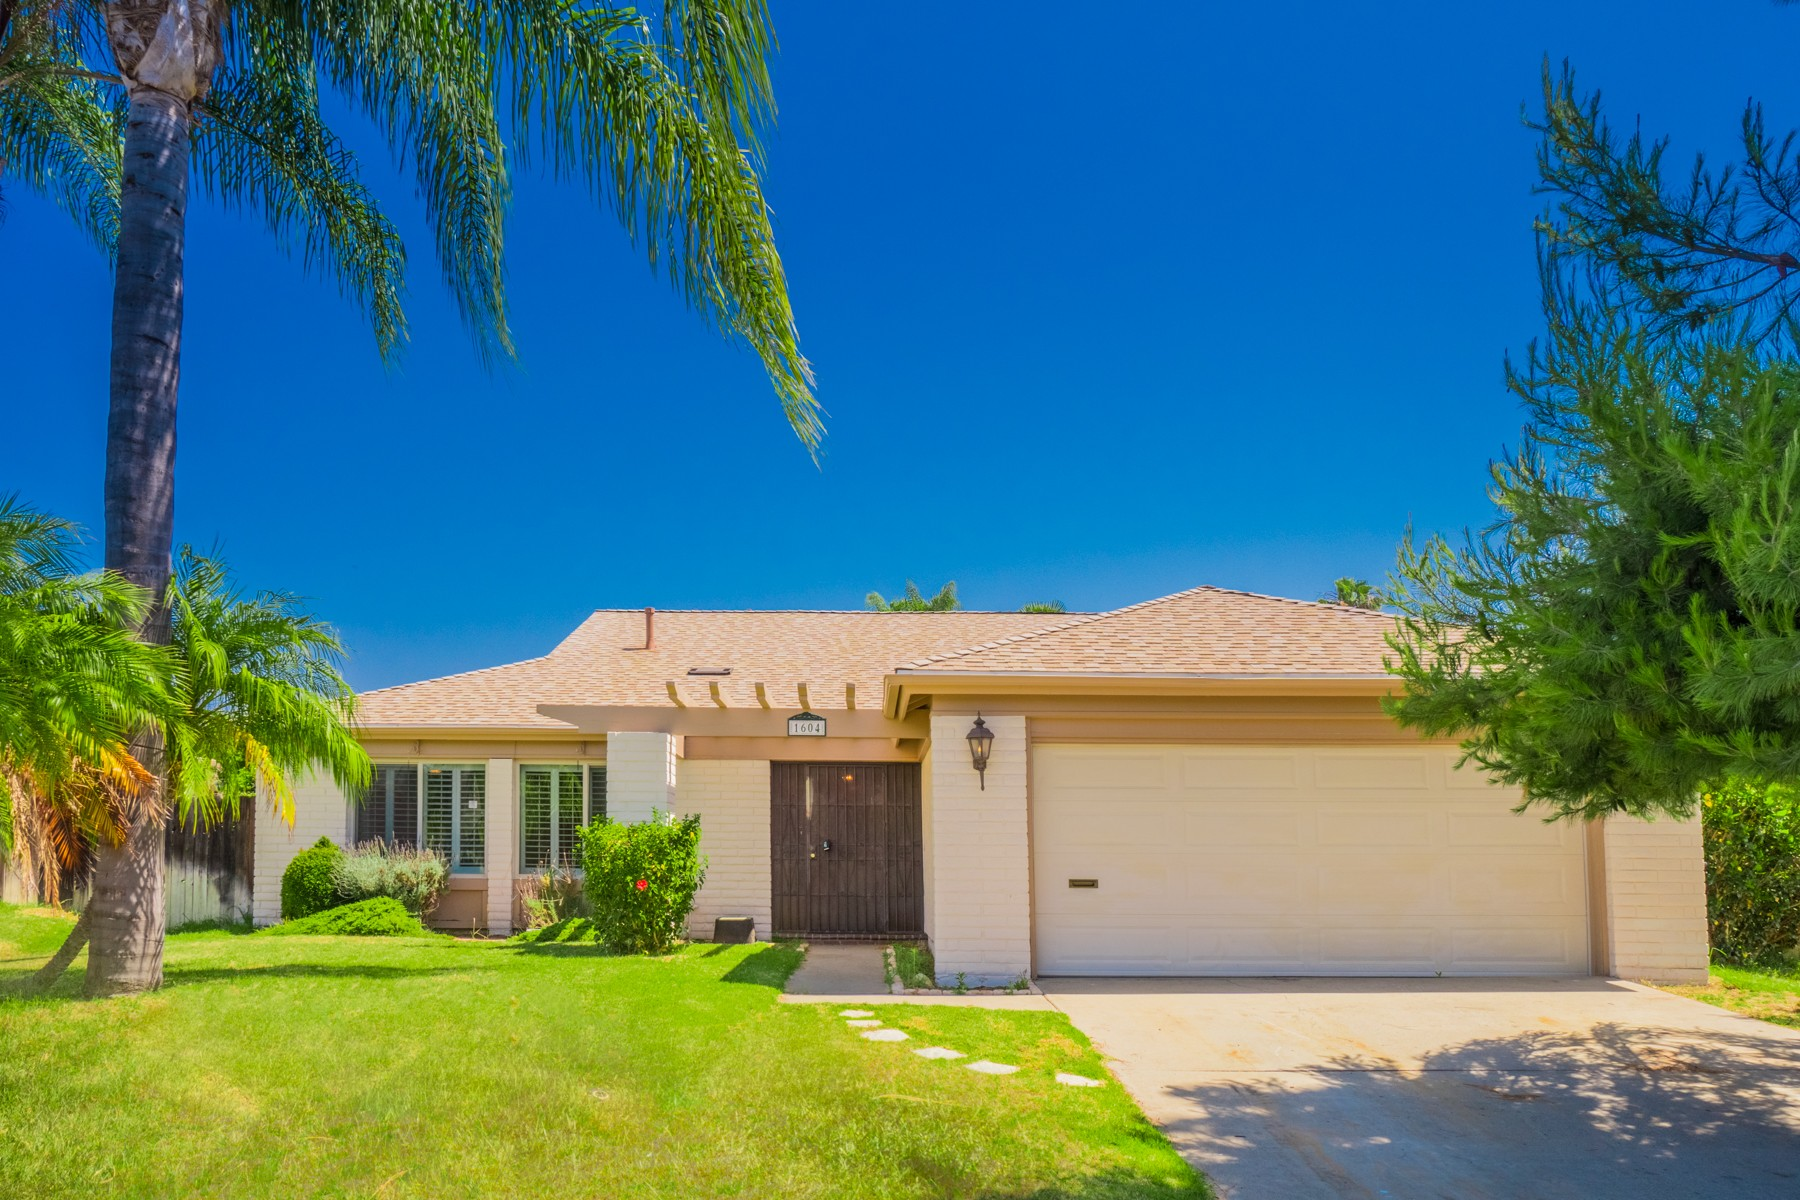 Single Family Home for Sale at 1604 Palomar Drive San Marcos, California 92069 United States